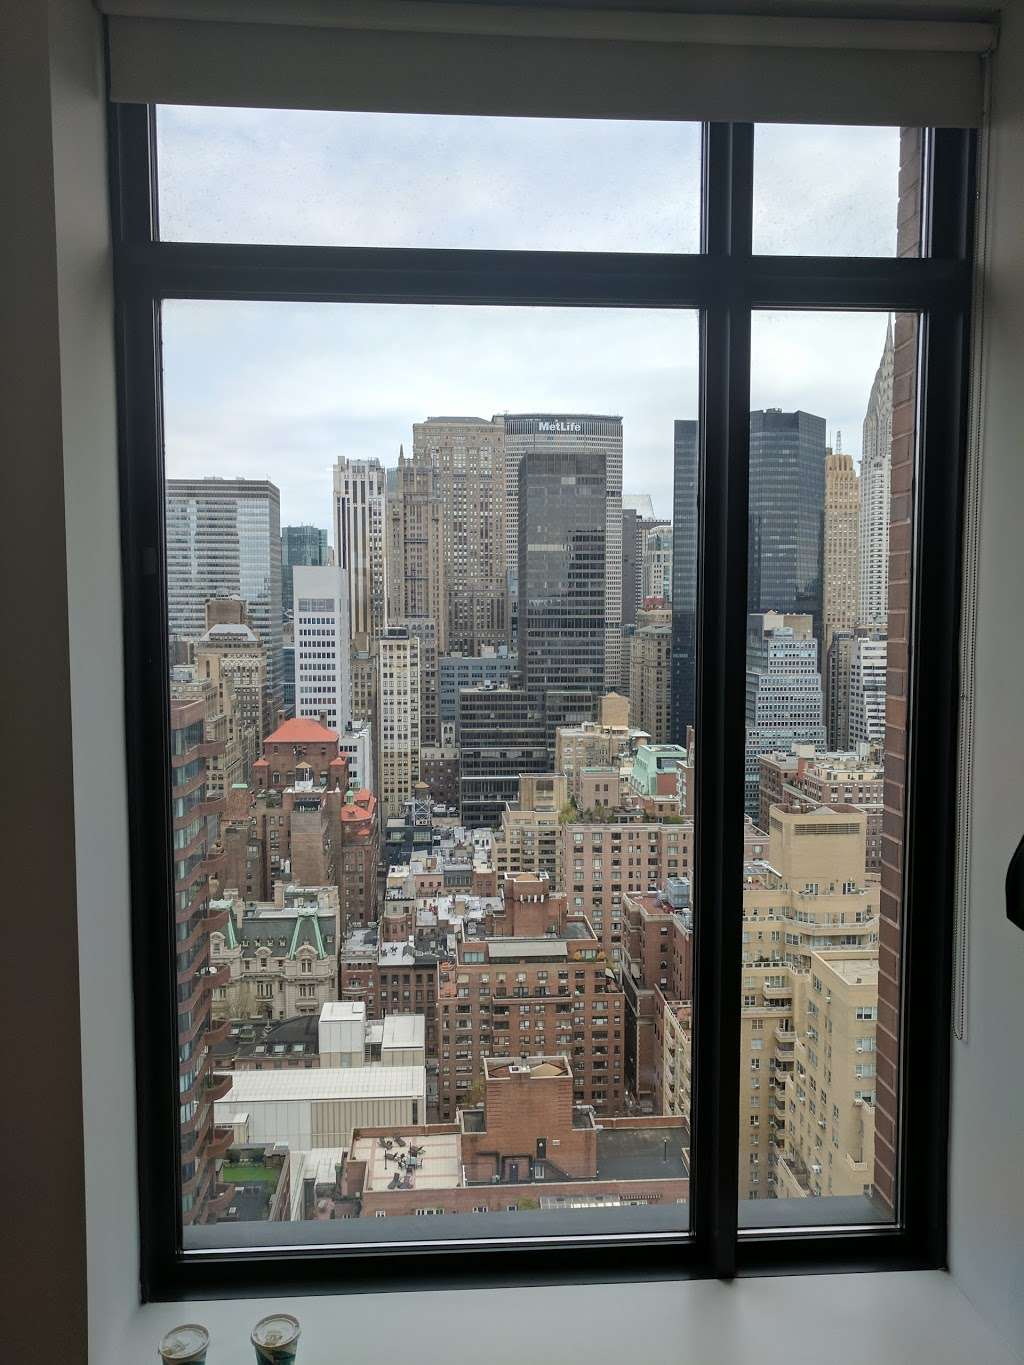 Madison Park Tower - lodging  | Photo 4 of 7 | Address: 49 E 34th St, New York, NY 10016, USA | Phone: (212) 655-9869